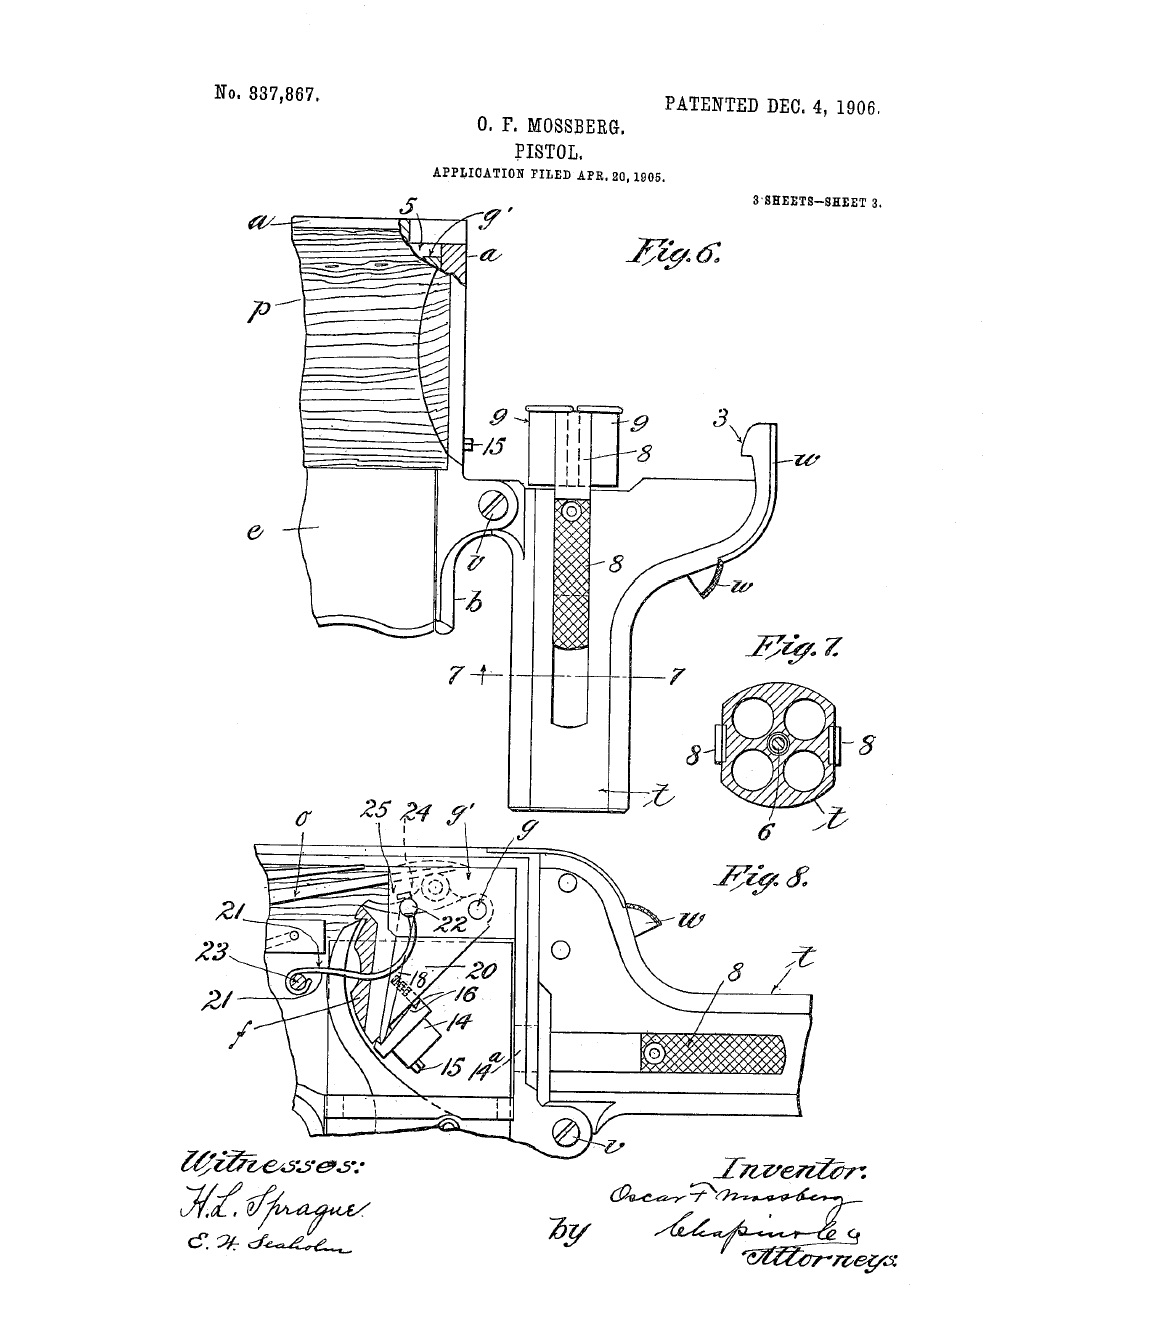 Patent Oscar Mossberg for a Unique Palm Pistol